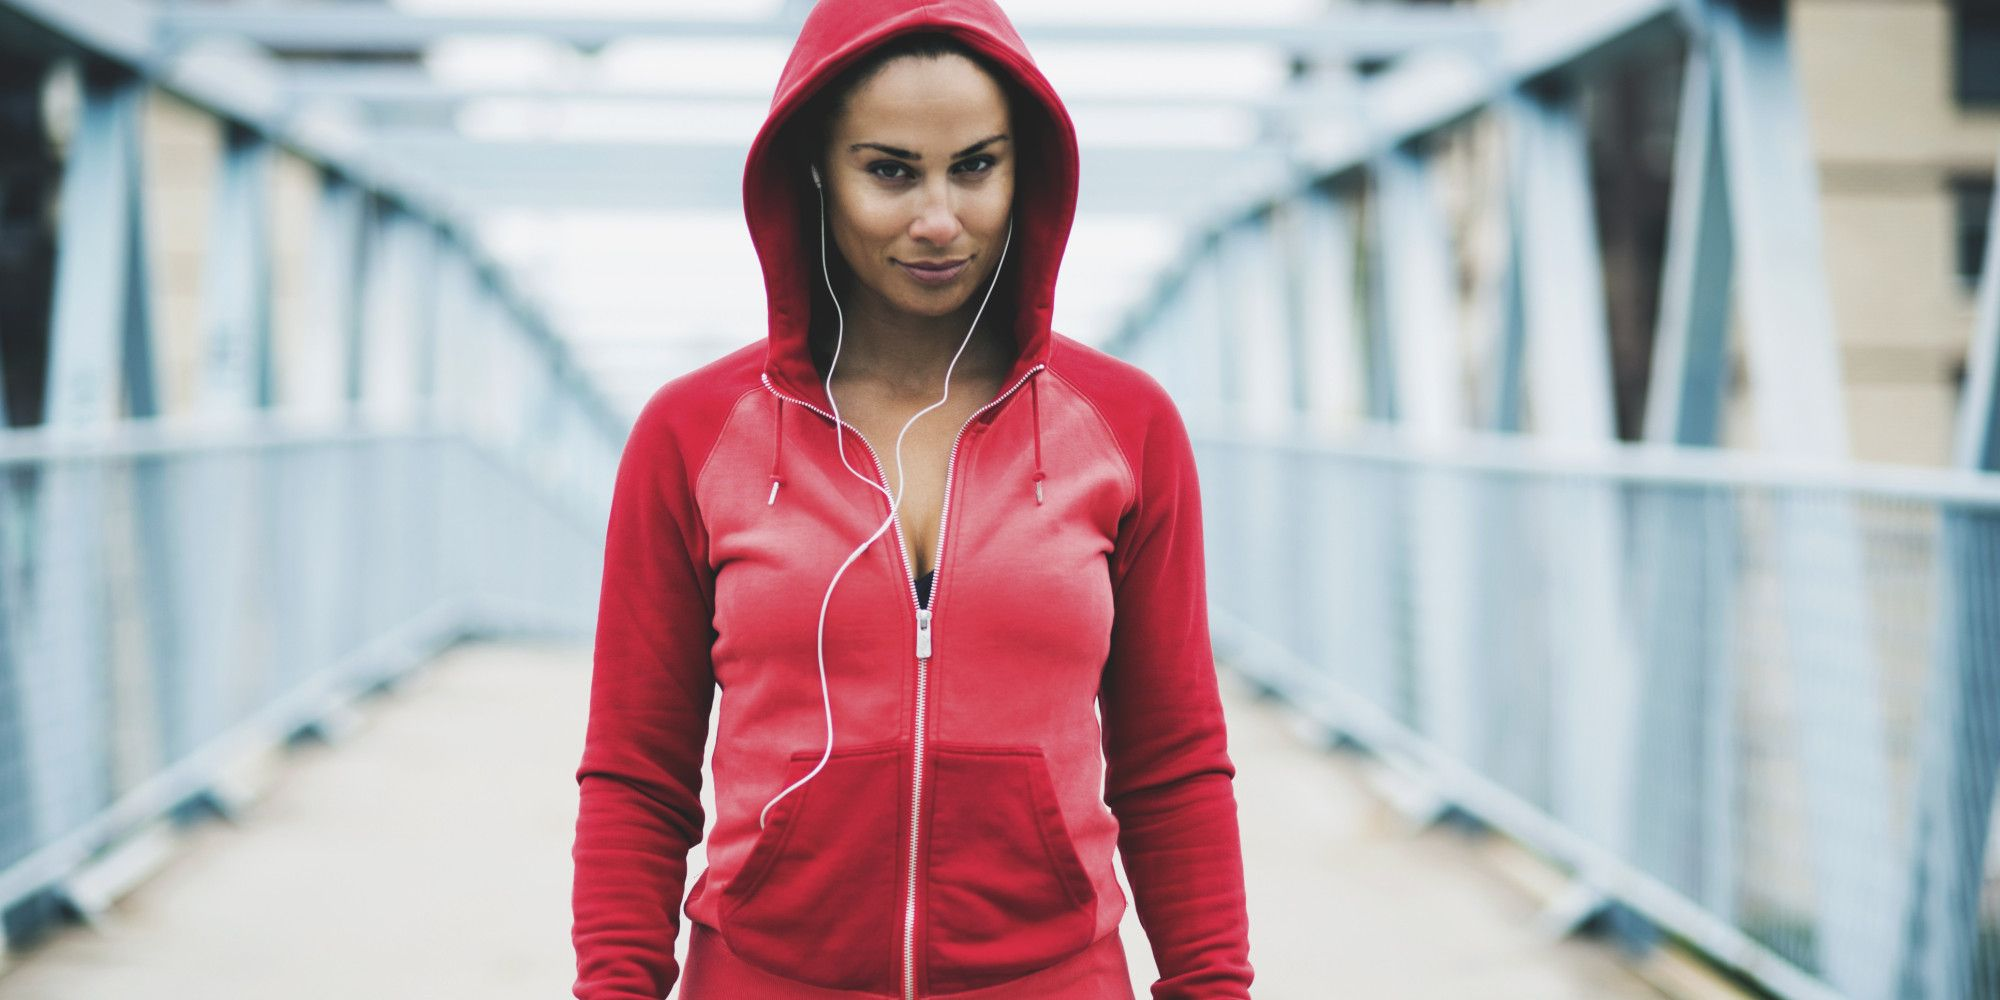 14 Workout Songs For April 2016 Workout songs, Workout